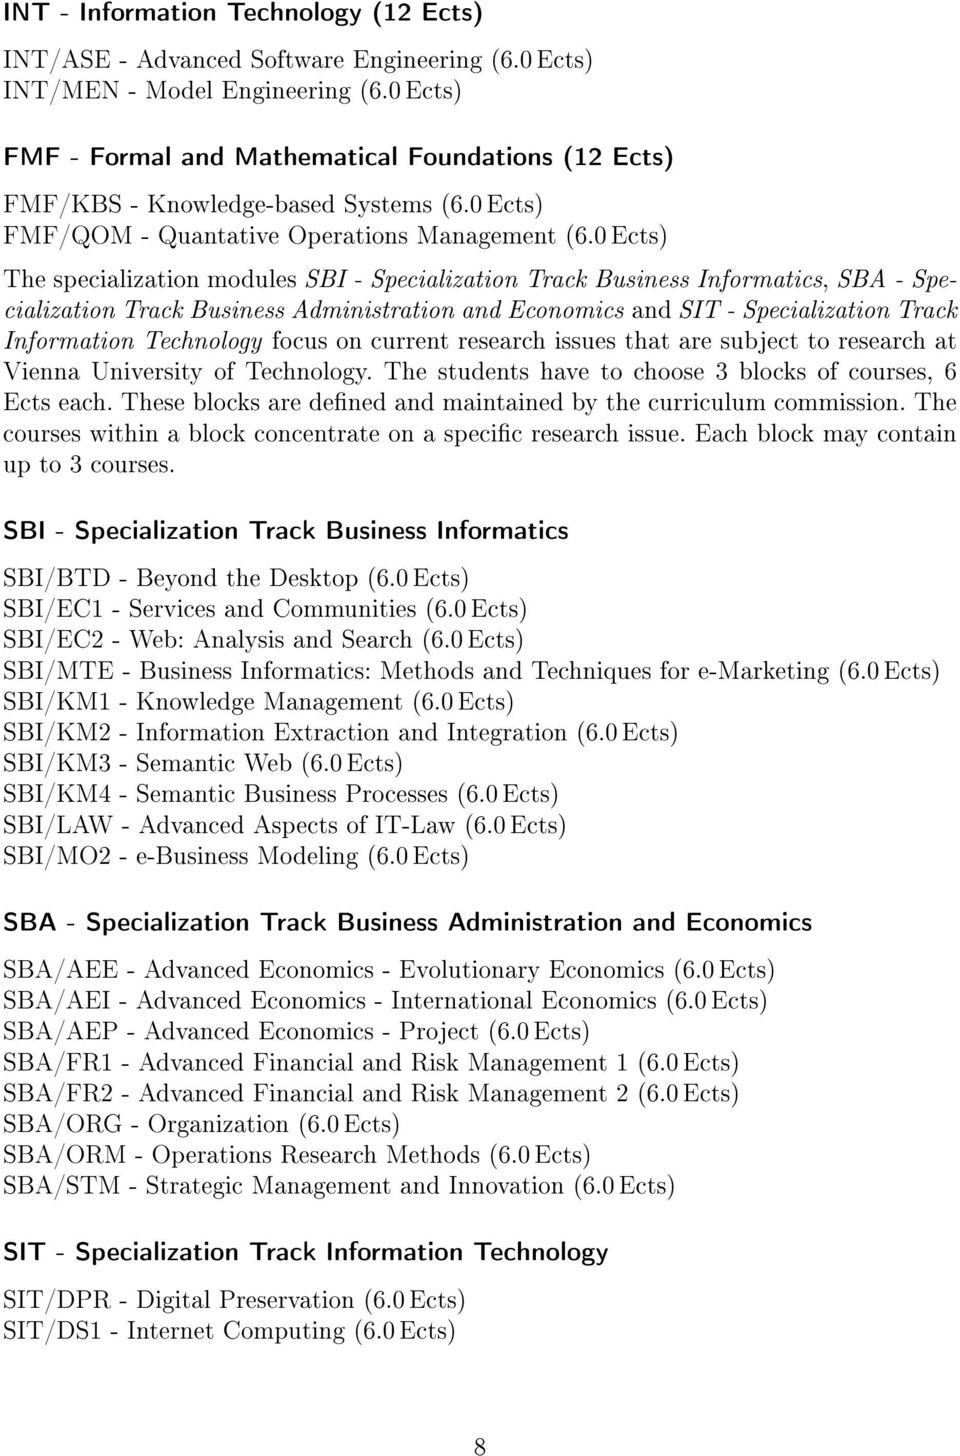 0 Ects) The specialization modules SBI - Specialization Track Business Informatics, SBA - Specialization Track Business Administration and Economics and SIT - Specialization Track Information